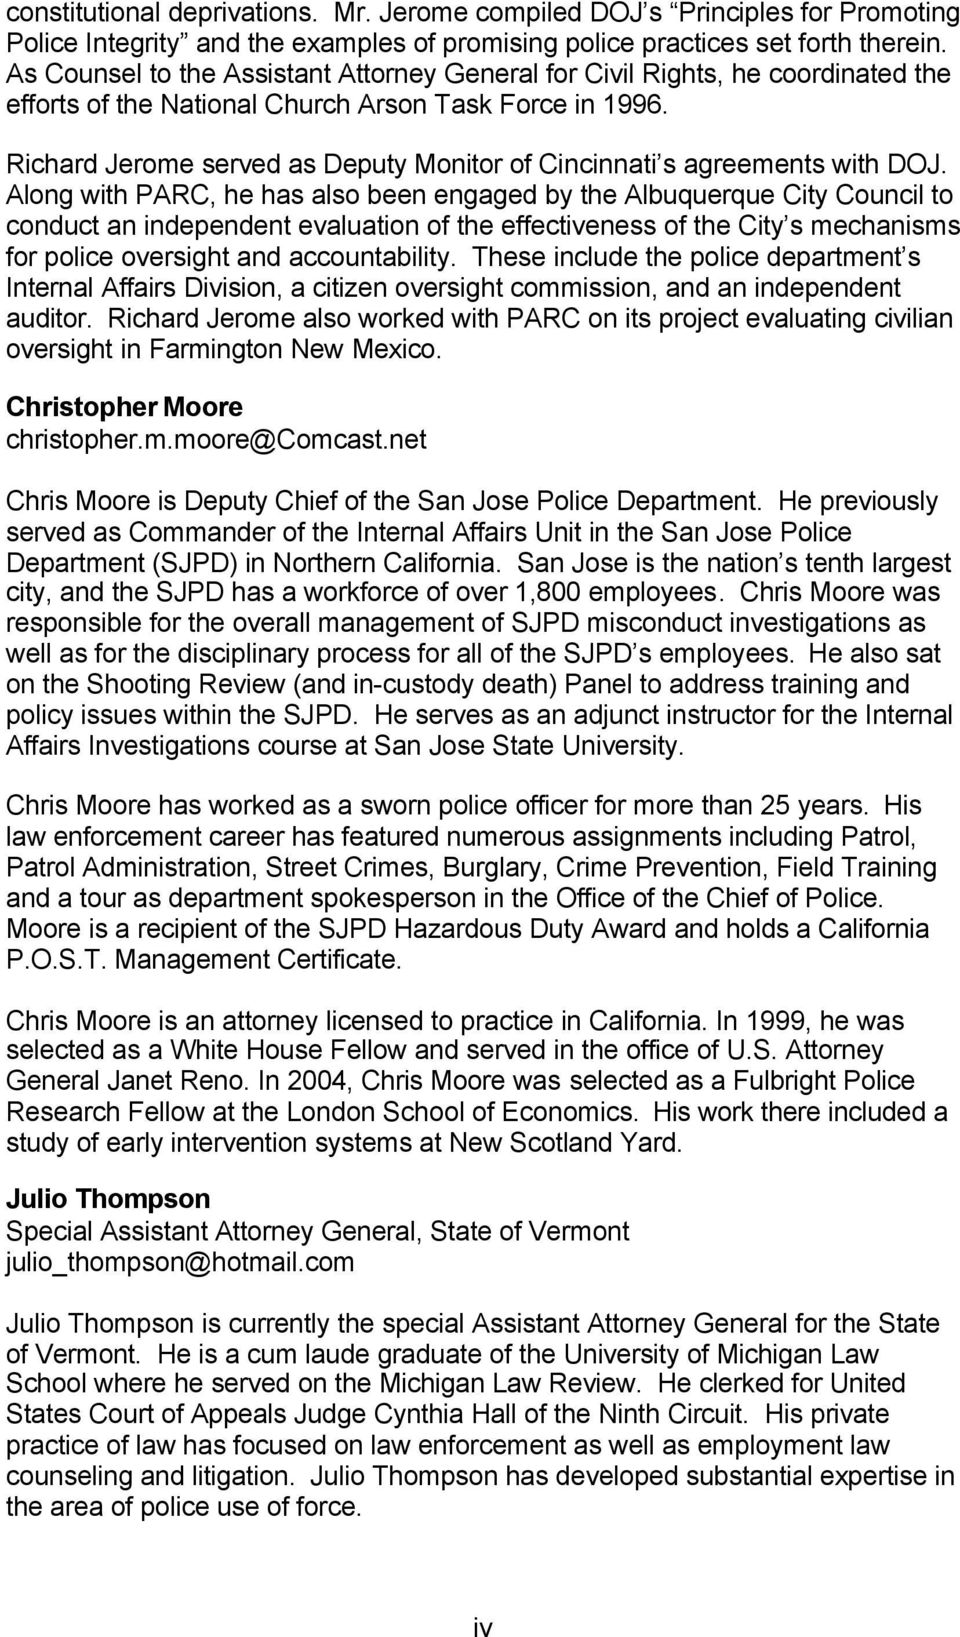 Richard Jerome served as Deputy Monitor of Cincinnati s agreements with DOJ.